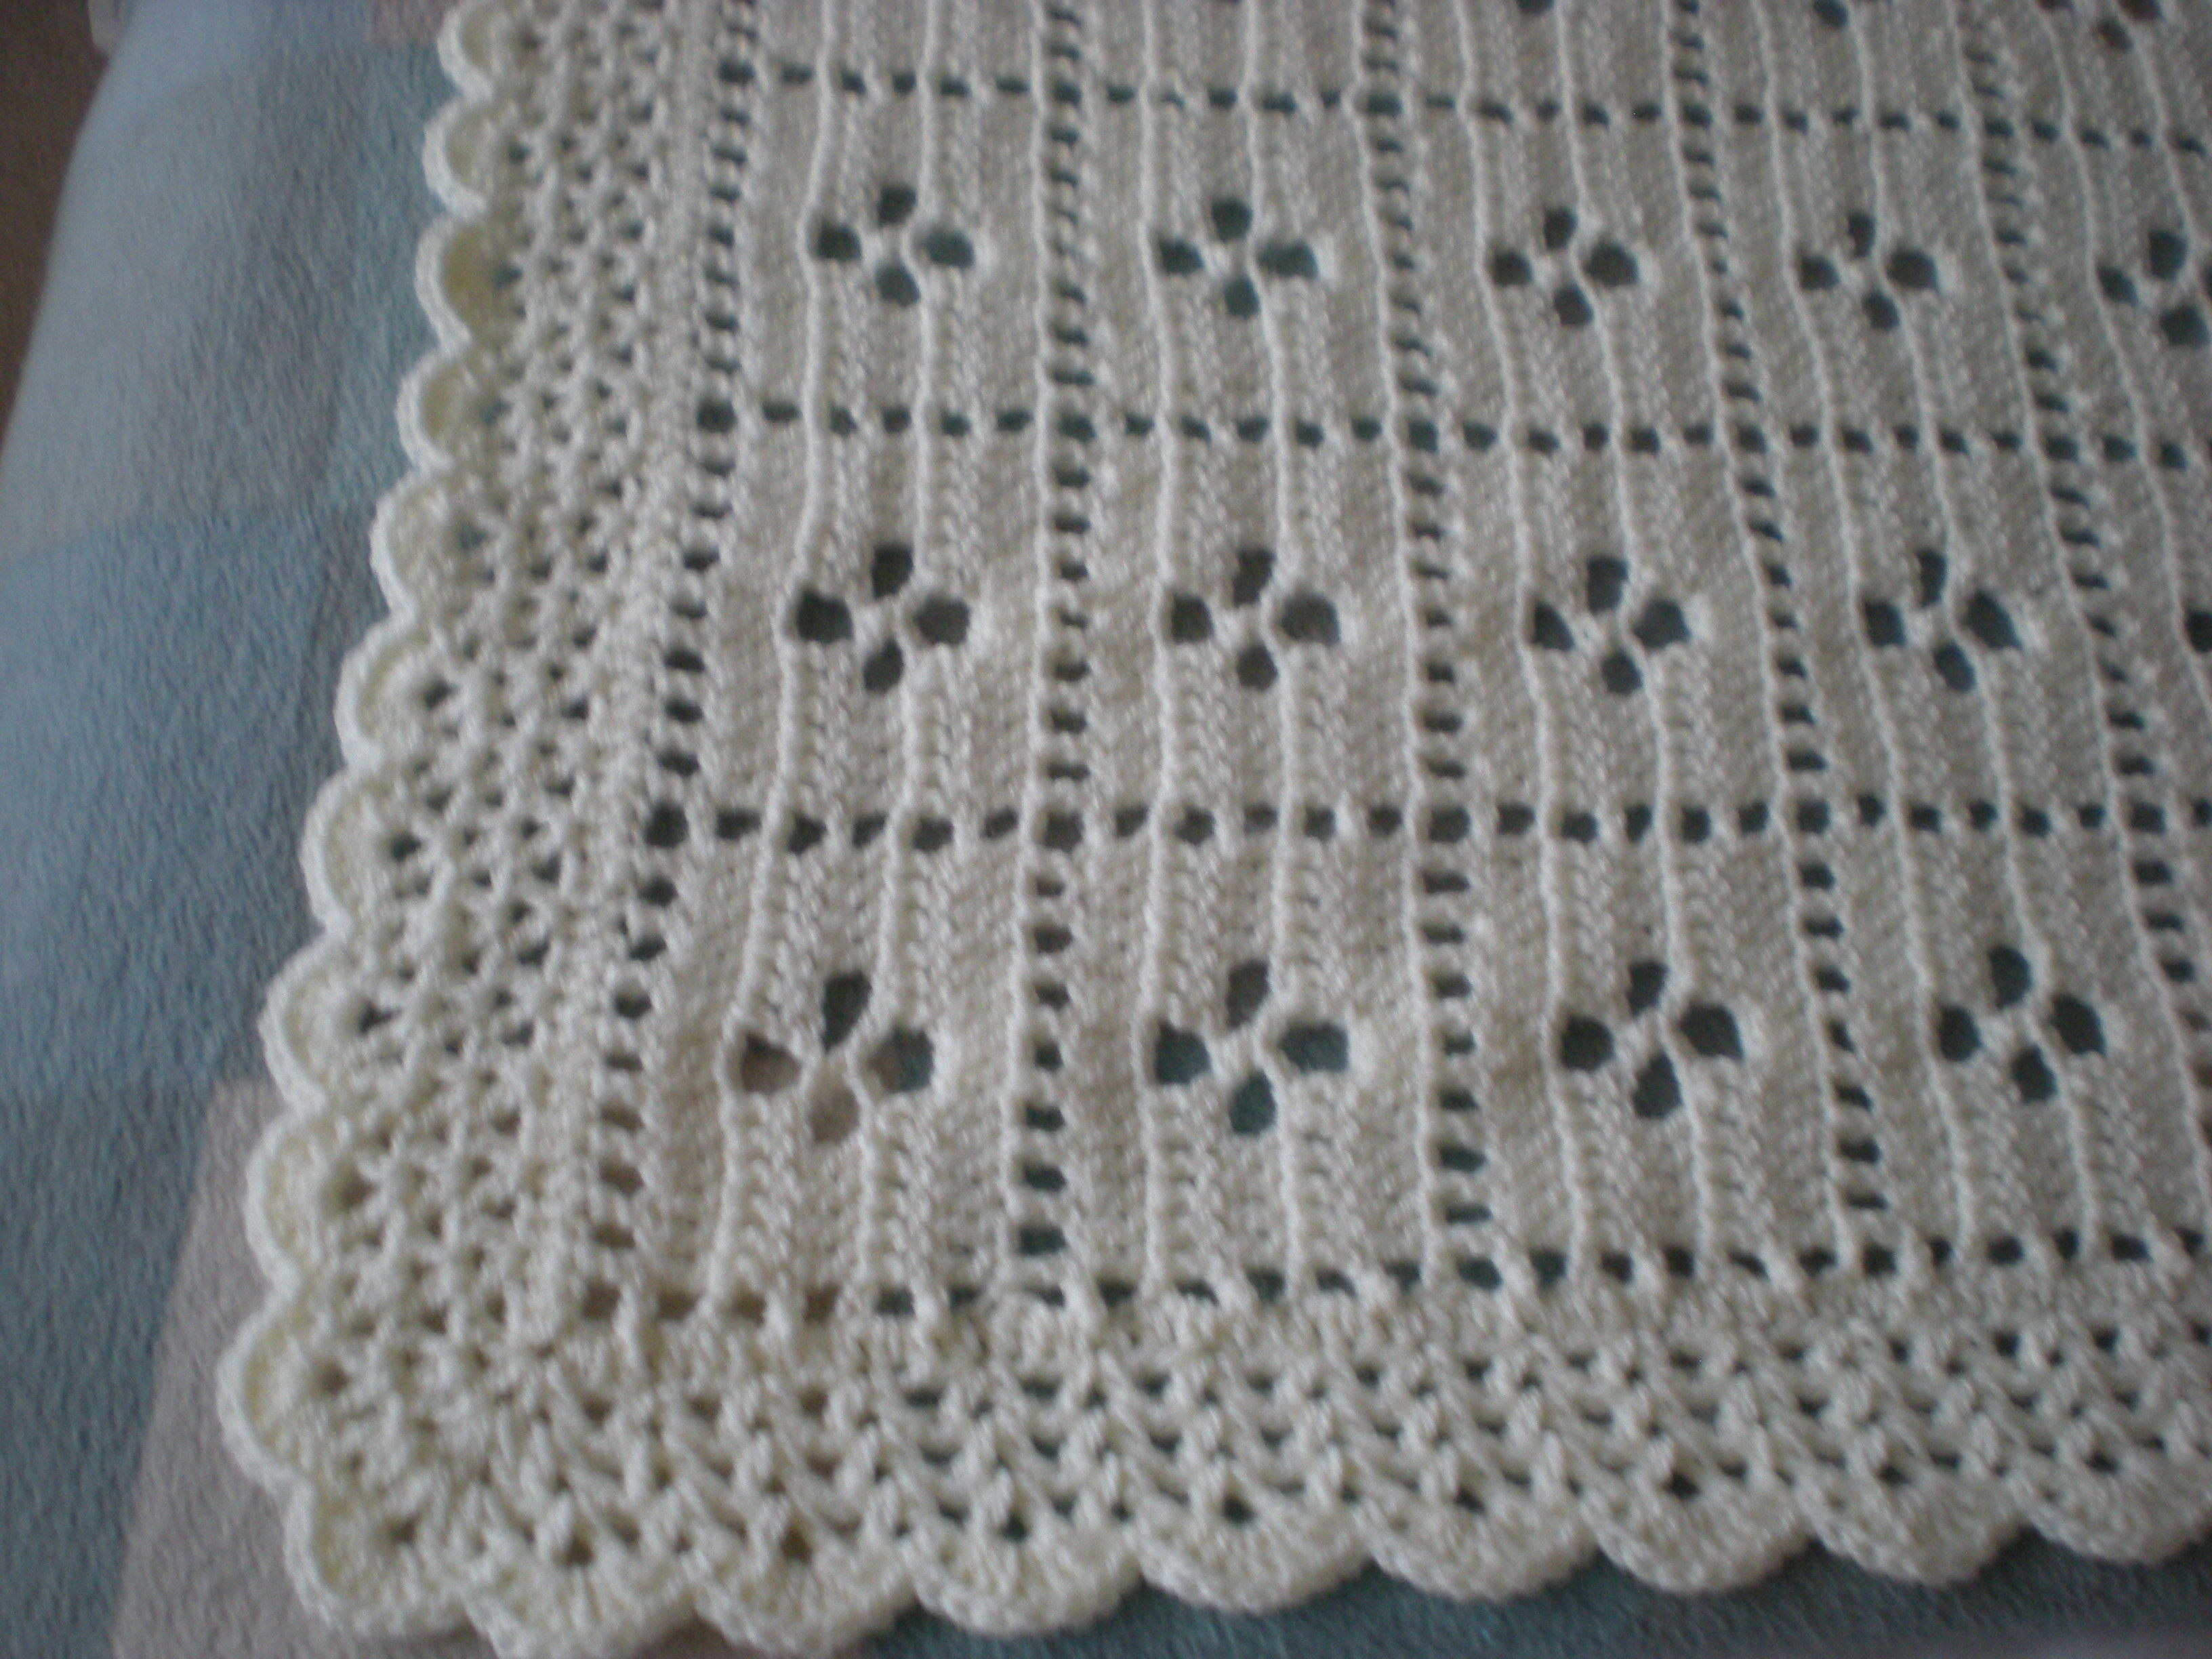 Call The Midwife Inspired Blanket crochet project by Sue LoveKnitting